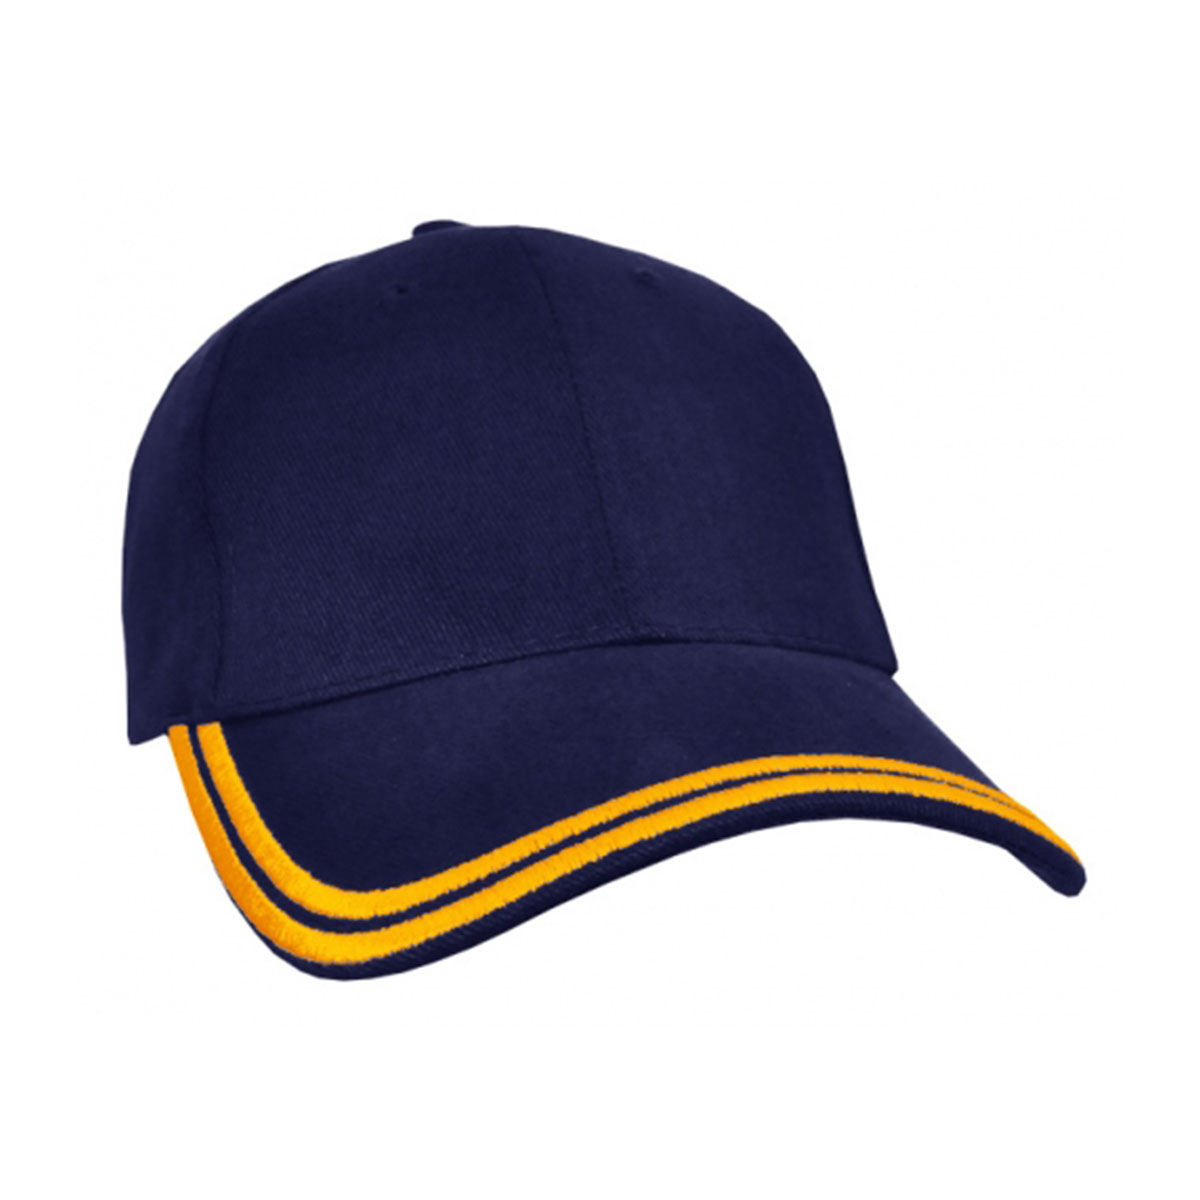 HBC Double Piping Cap-Navy / Gold